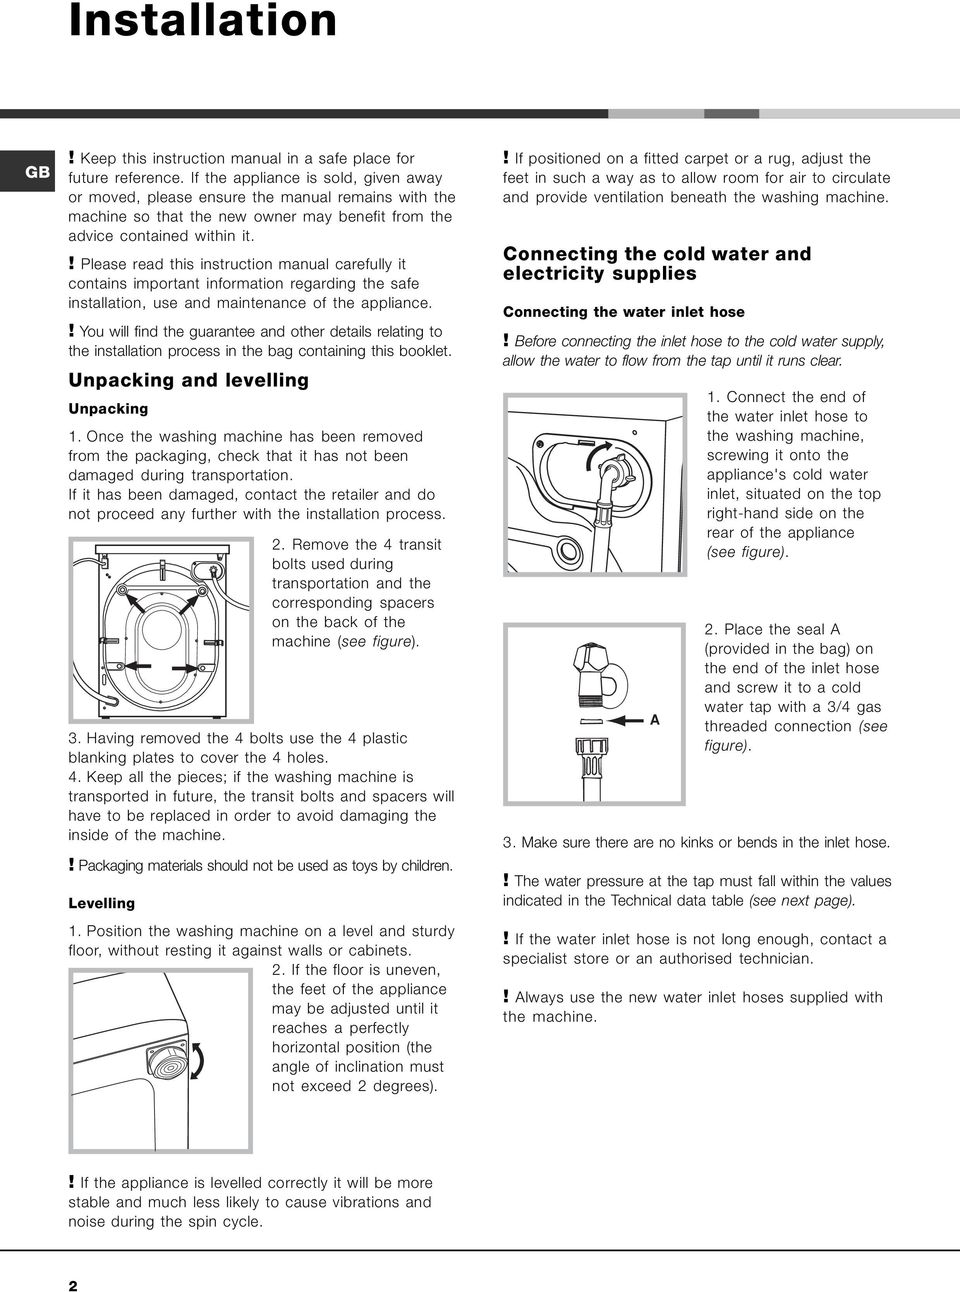 ! Please read this instruction manual carefully it contains important information regarding the safe installation, use and maintenance of the appliance.